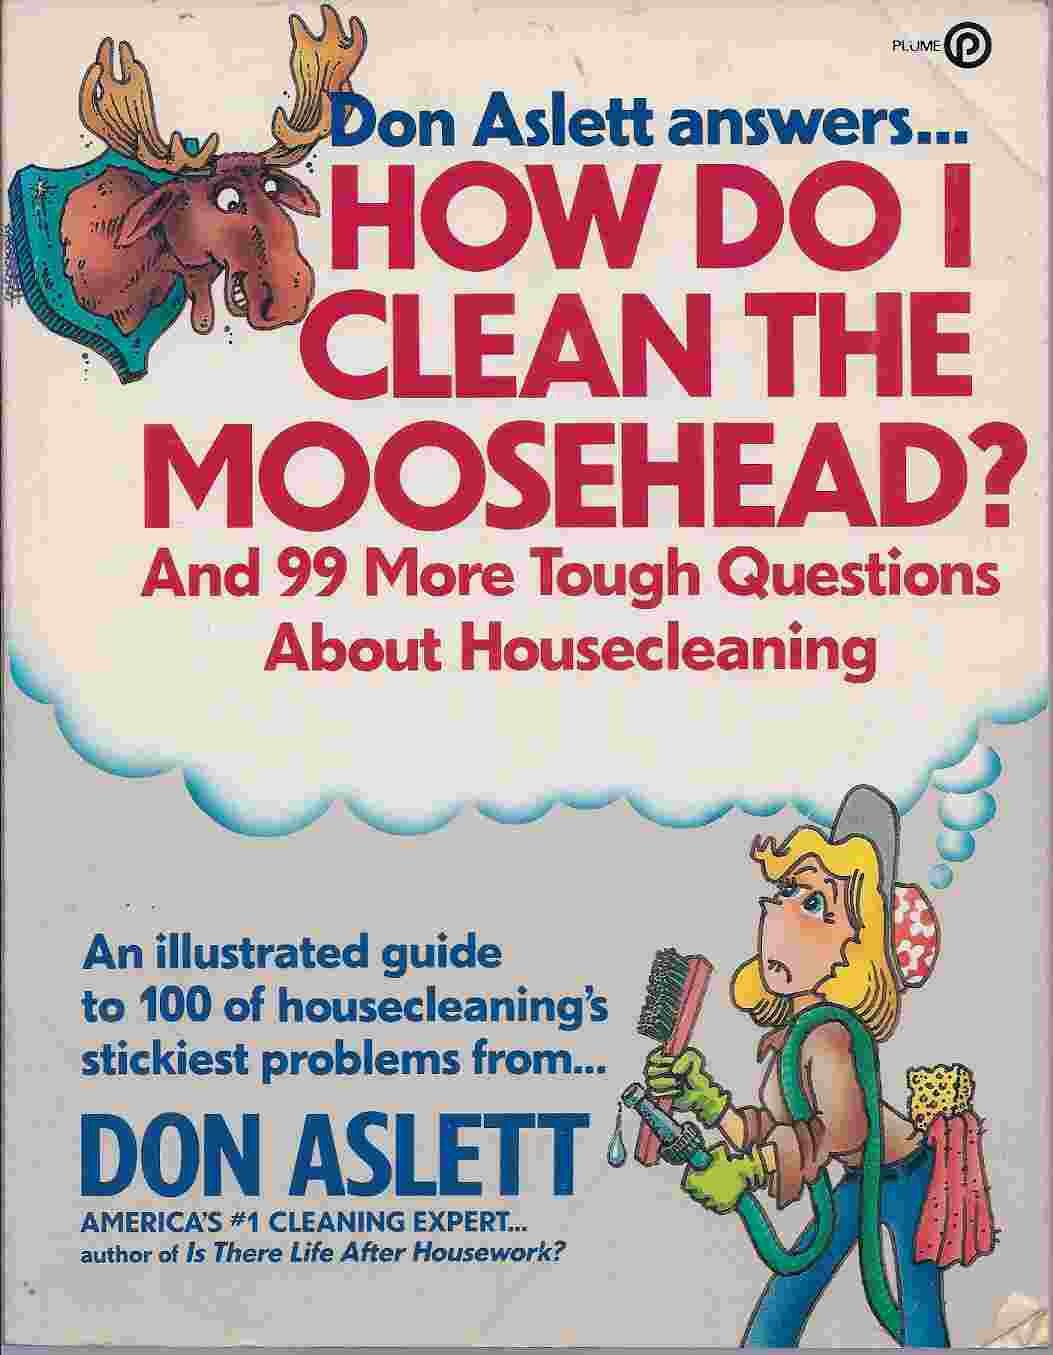 how do i clean the moosehead plume don aslett 9780452262973 how do i clean the moosehead plume don aslett 9780452262973 amazon com books